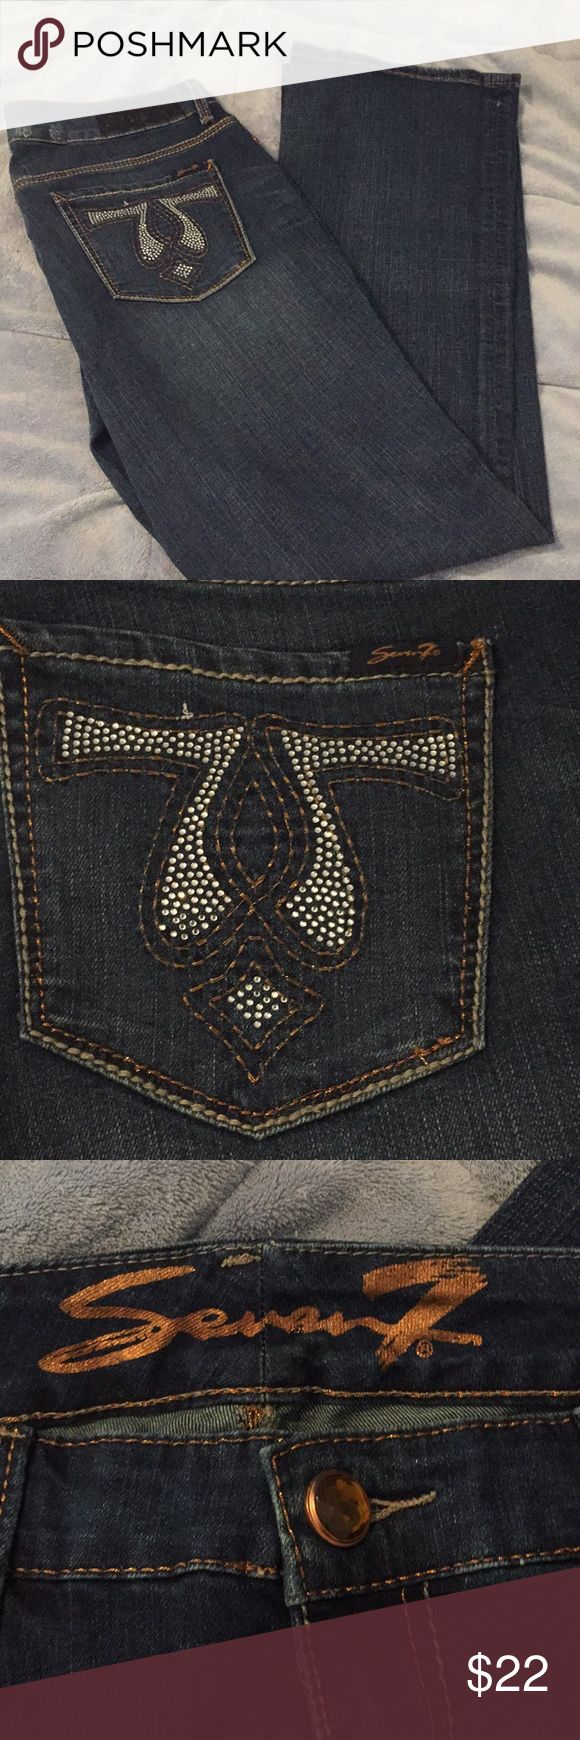 NWOT women's Seven7 jeans NWOT women's Seven7 jeans. Never worn so they are in excellent condition. Cute rhinestone design on the butt pockets. Stretchy comfortable material. Inseam is 32in (seen in picture). Slight flare Seven7 Jeans